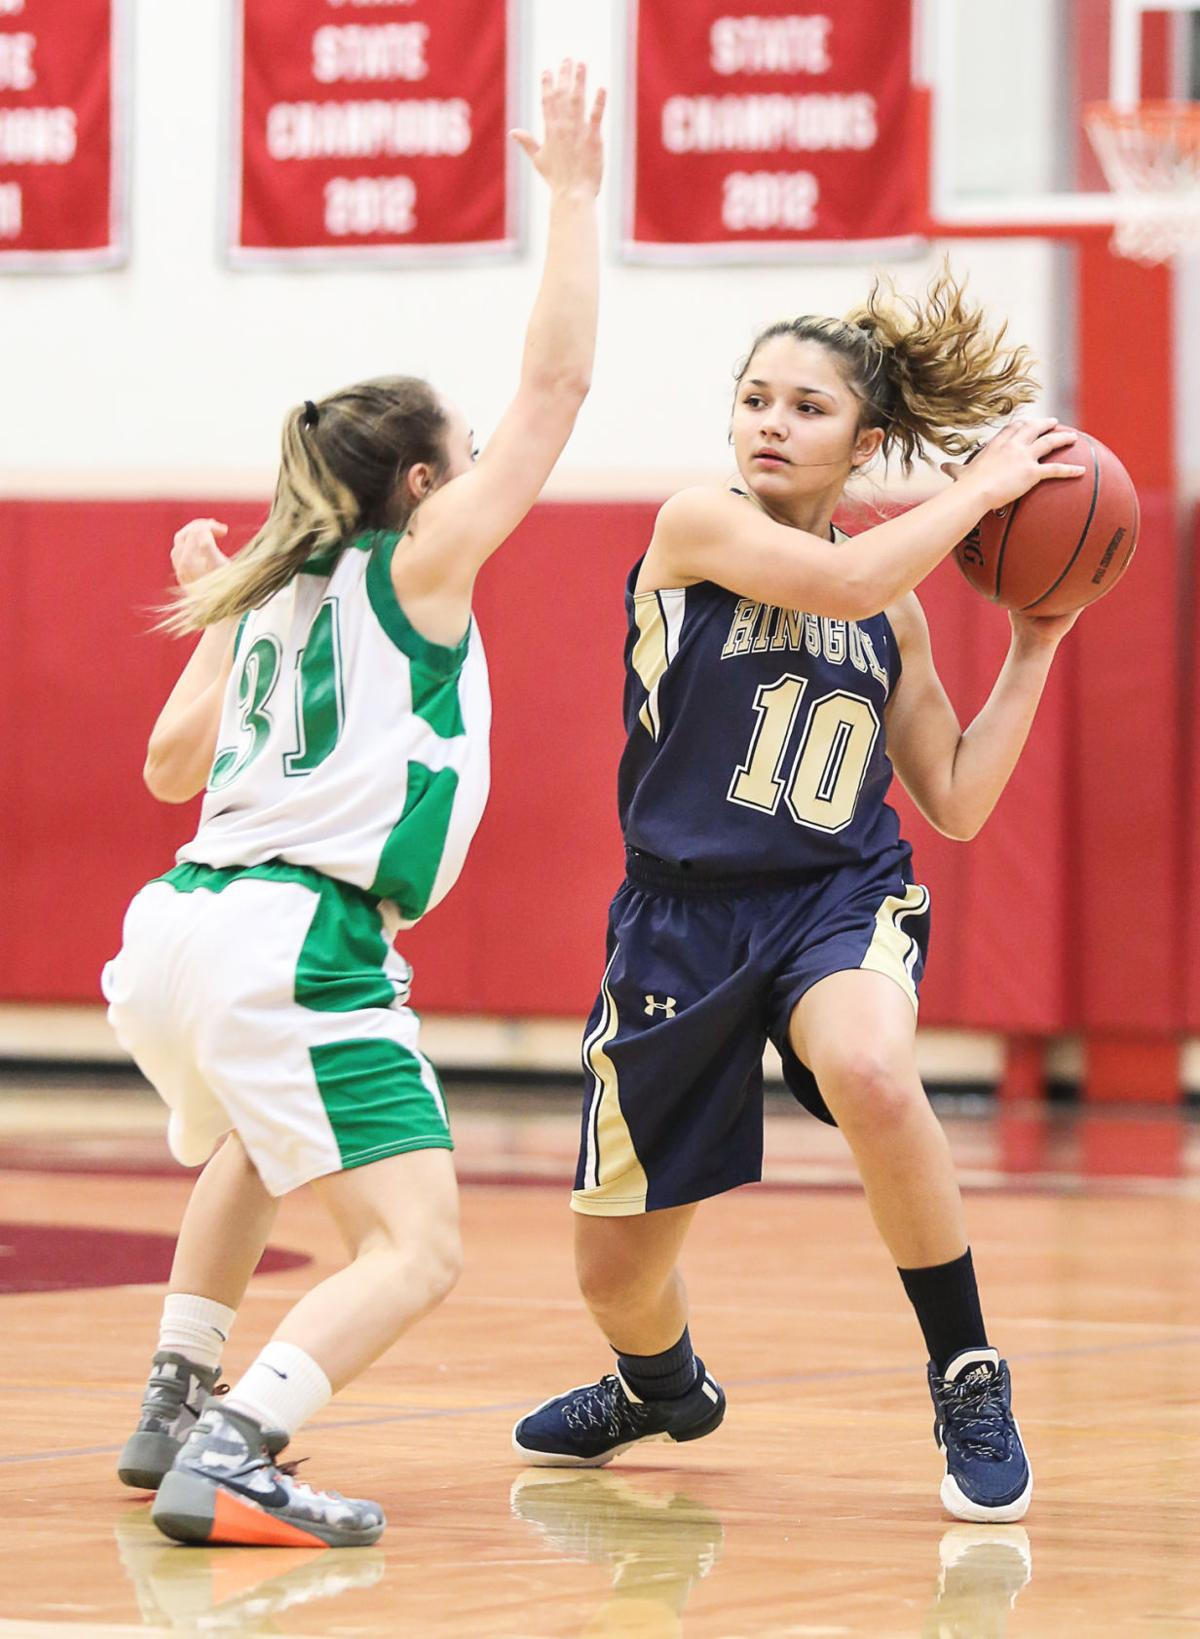 fayette girls 2018-01-15 - chartiers valley girls basketball at south fayette girls basketball recent news wpial baseball playoffs roundup for may 22: brownsville upsets no 1.